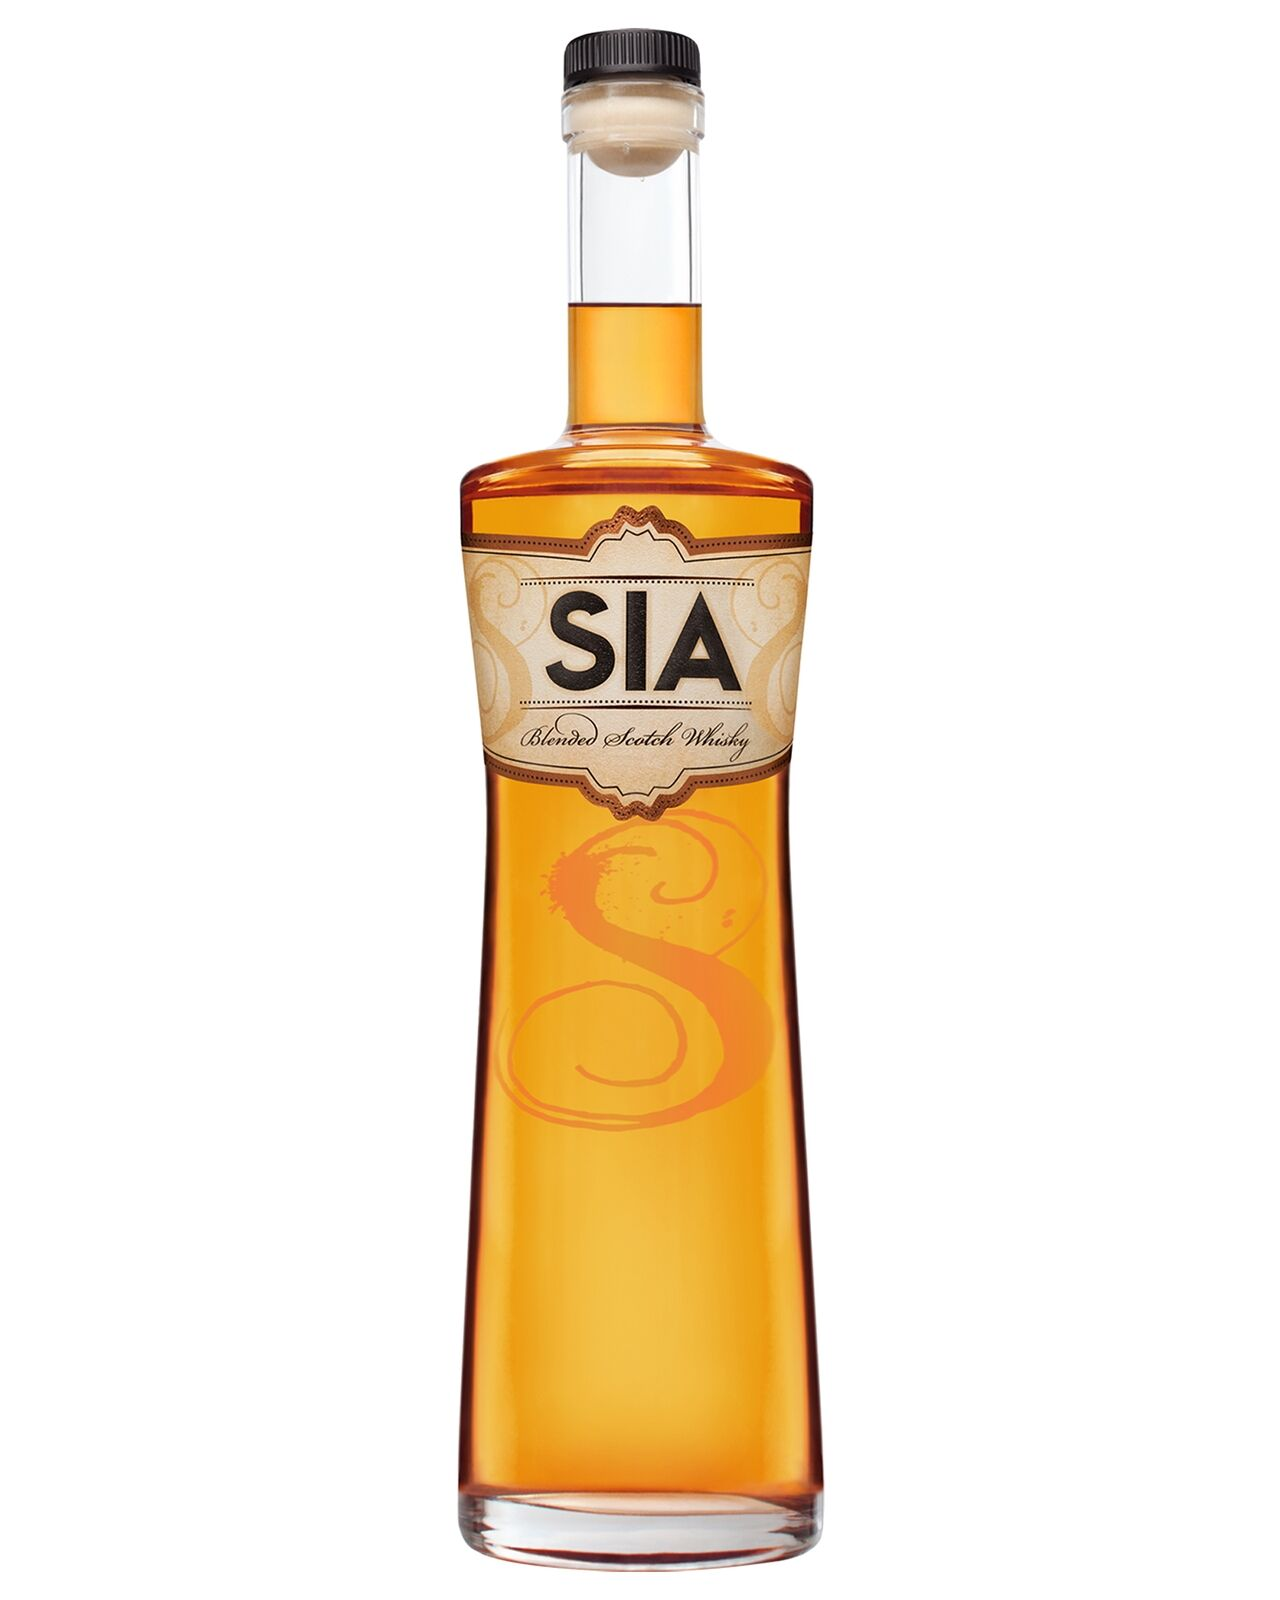 SIA Scotch Whisky 750ml bottle